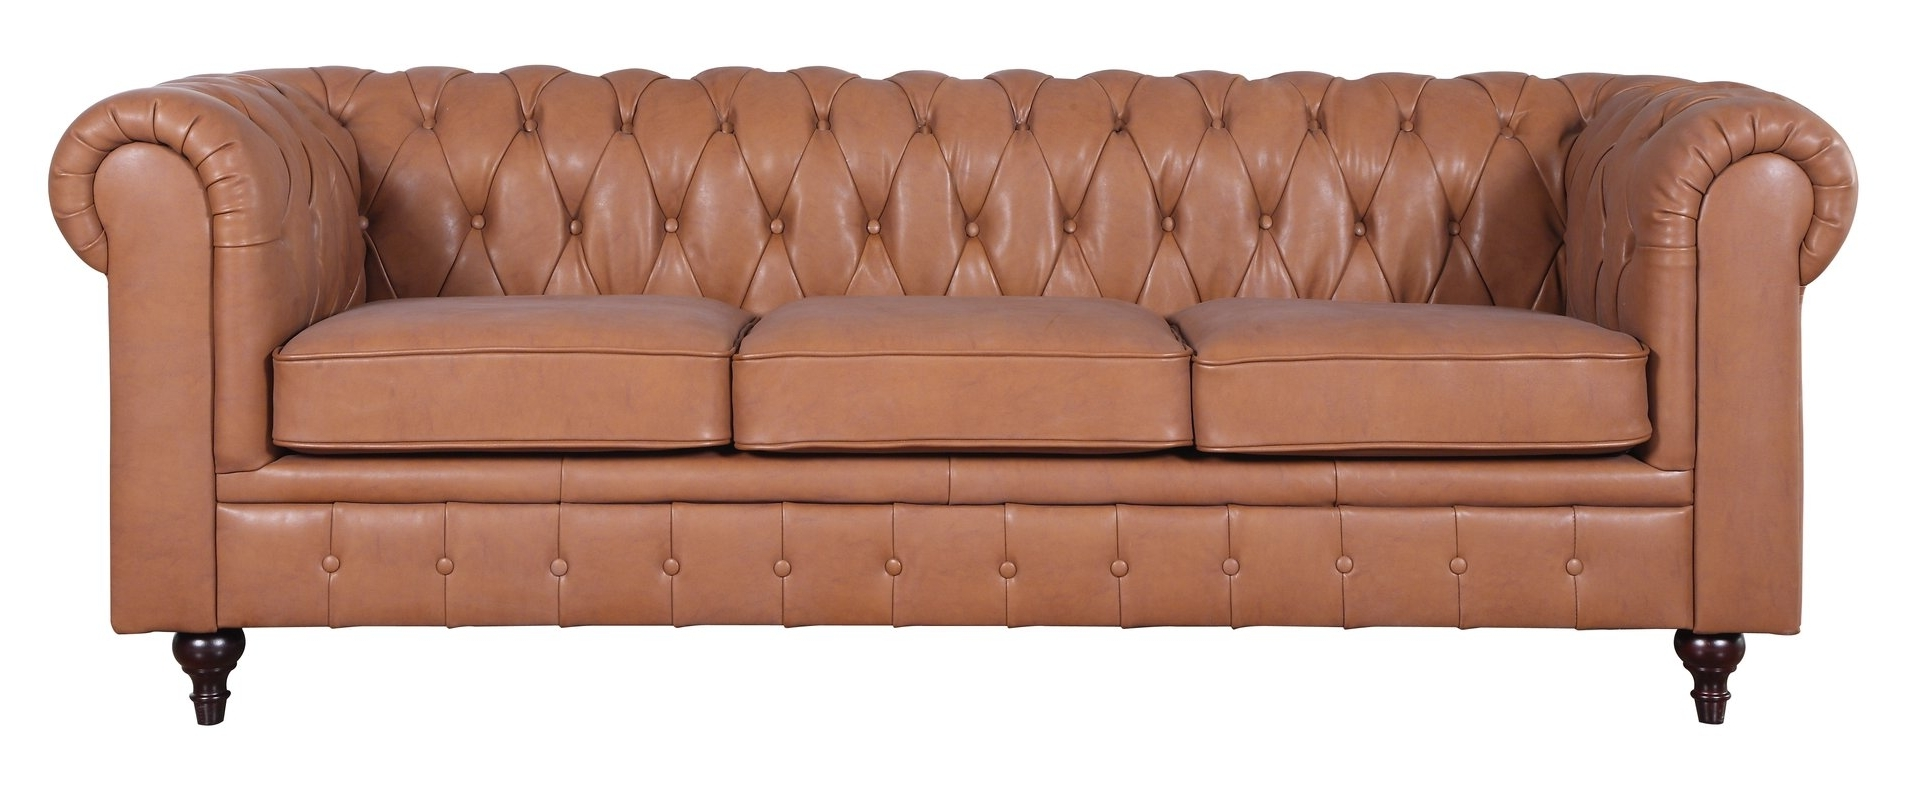 Darby Home Co Kacper Tufted Leather Chesterfield Sofa & Reviews For Well Known Tufted Leather Chesterfield Sofas (View 8 of 15)